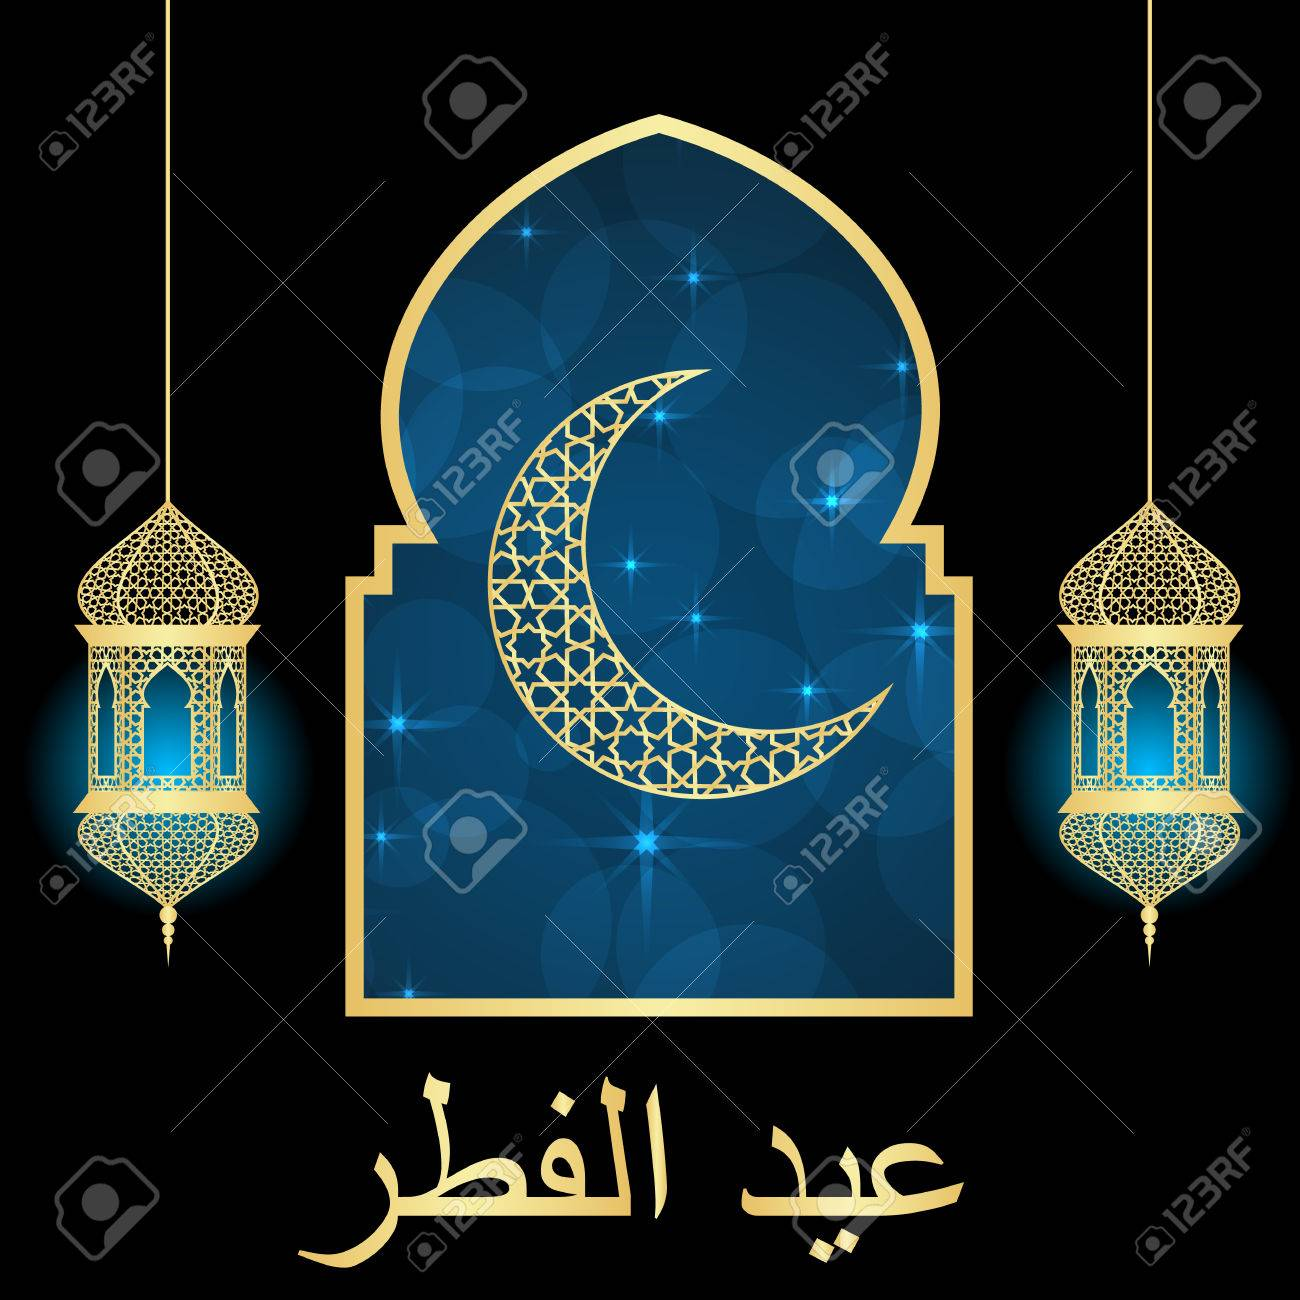 Eid al fitr greeting card on black background vector illustration eid al fitr greeting card on black background vector illustration eid al kristyandbryce Images